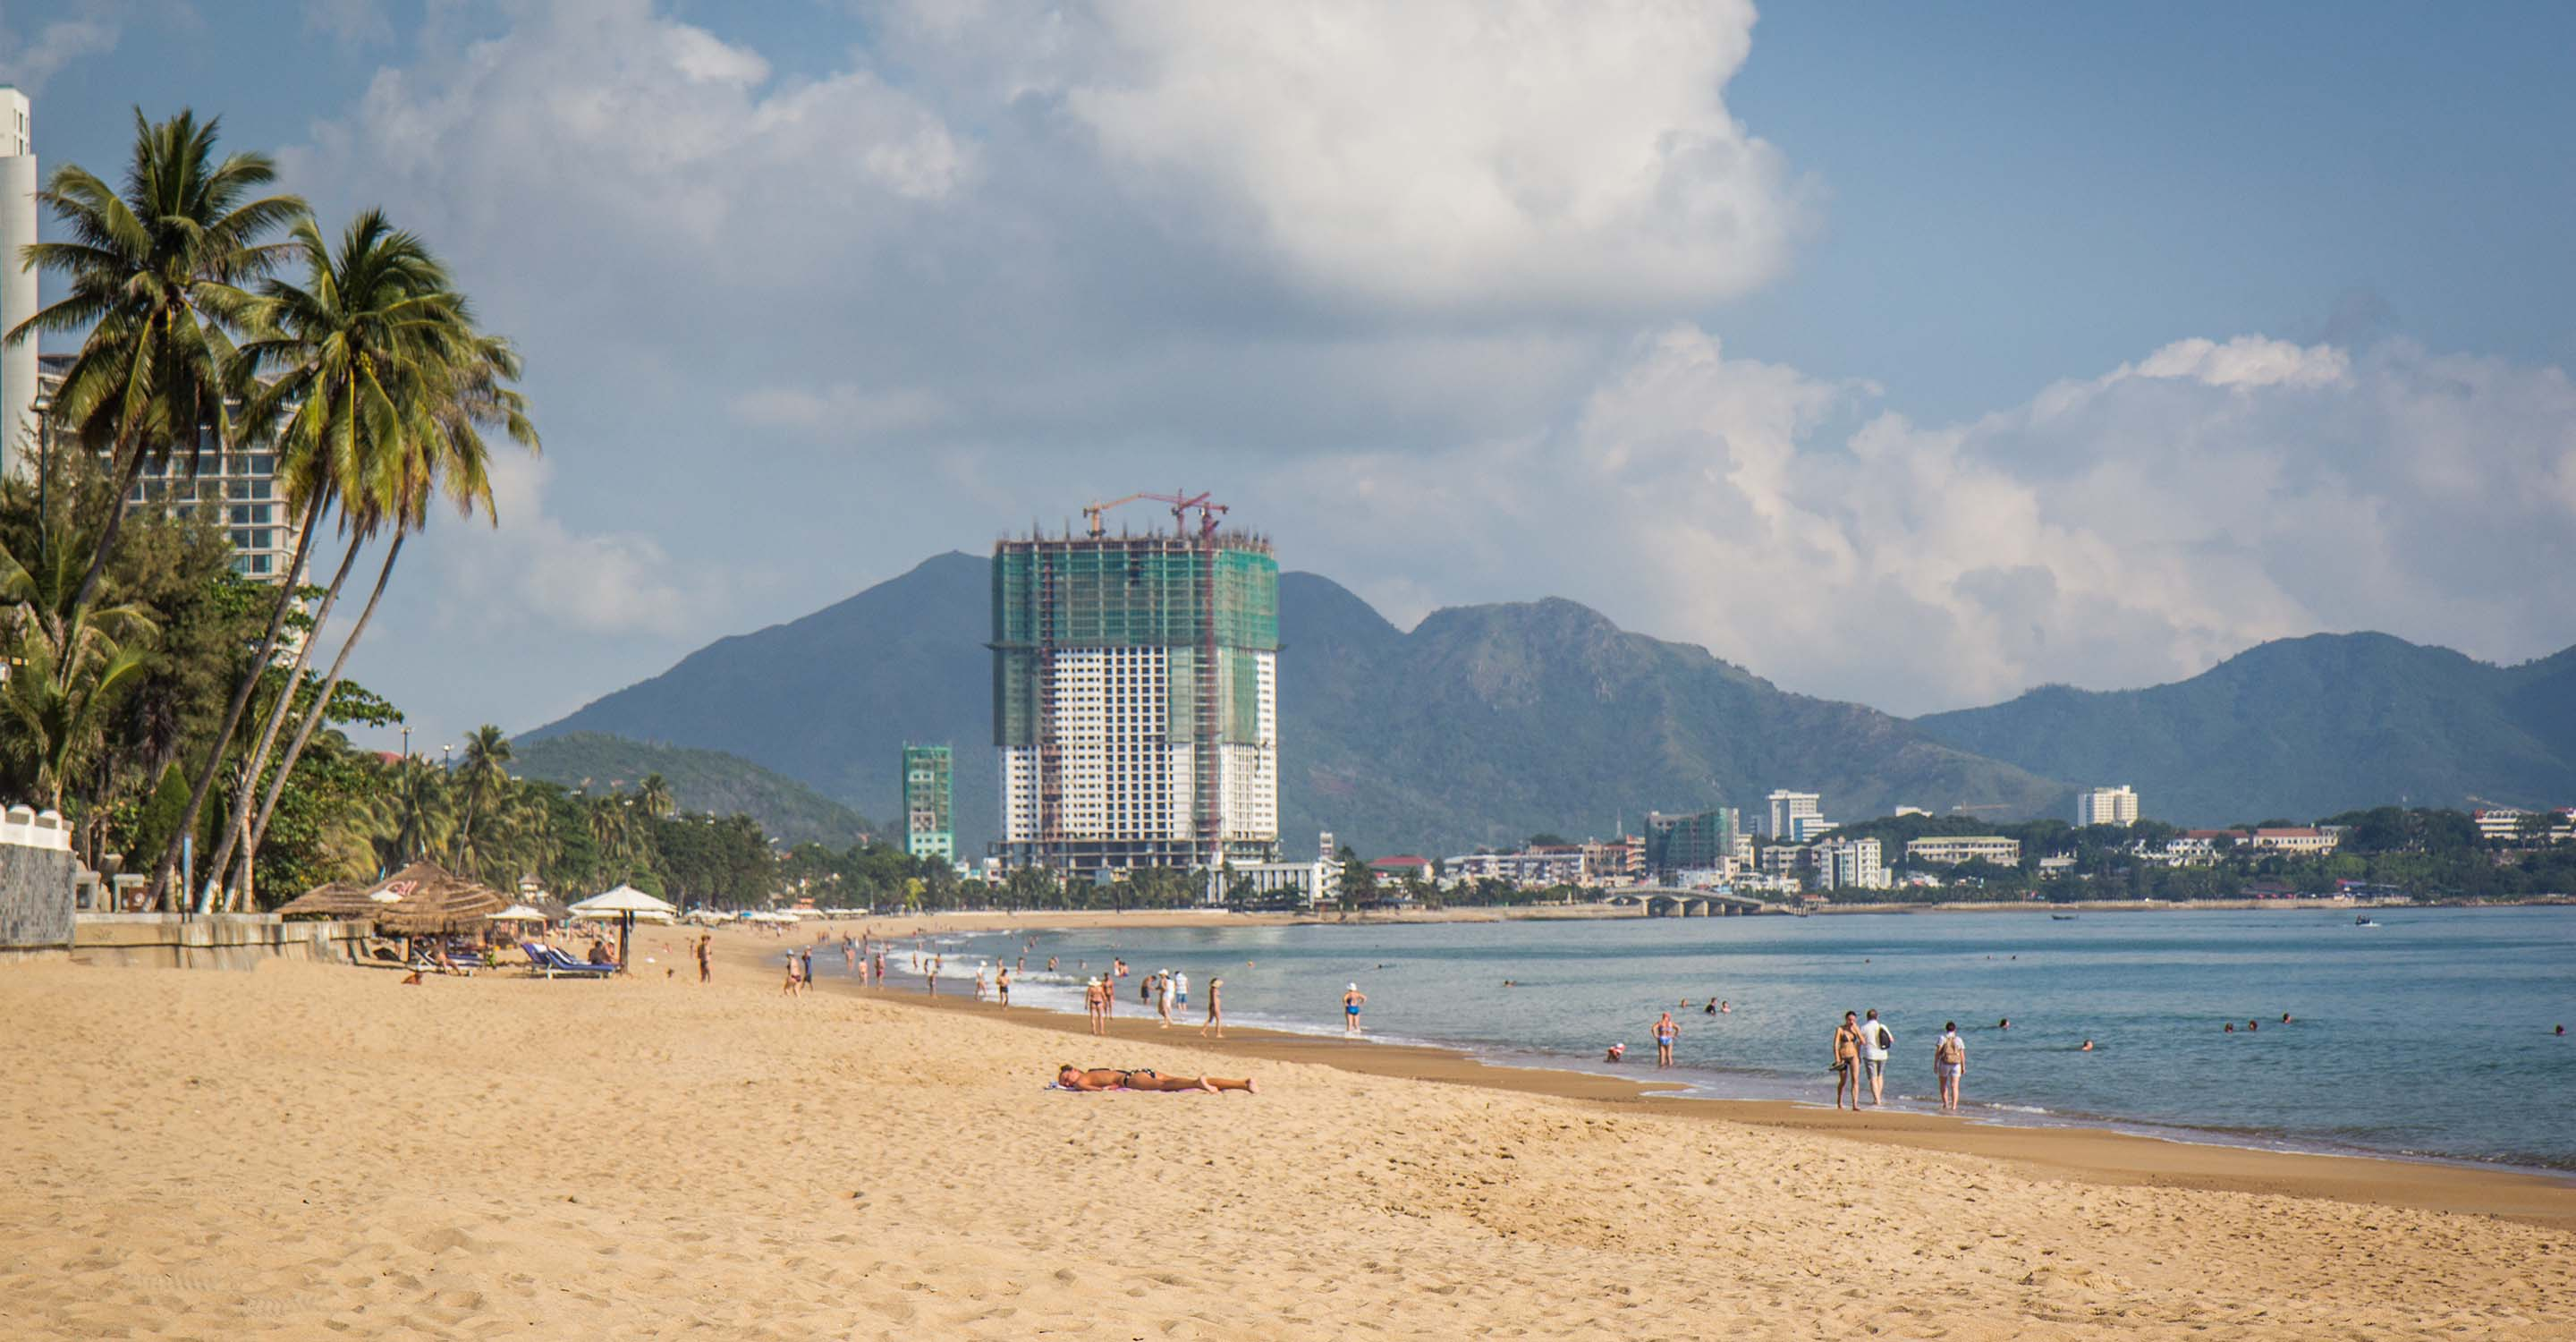 The Russians are coming - New world order in Nha Trang, Vietnam